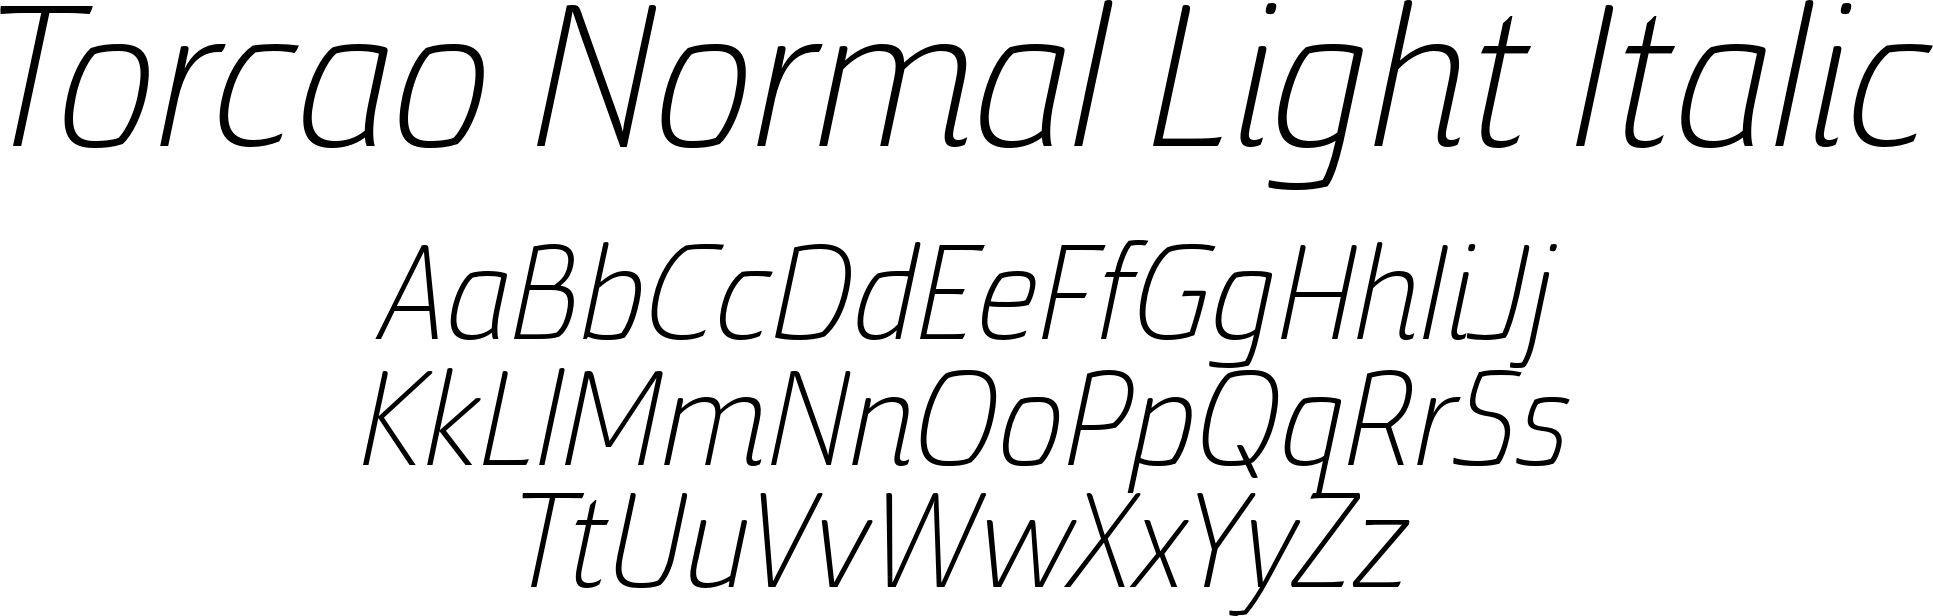 Torcao Normal Light Italic